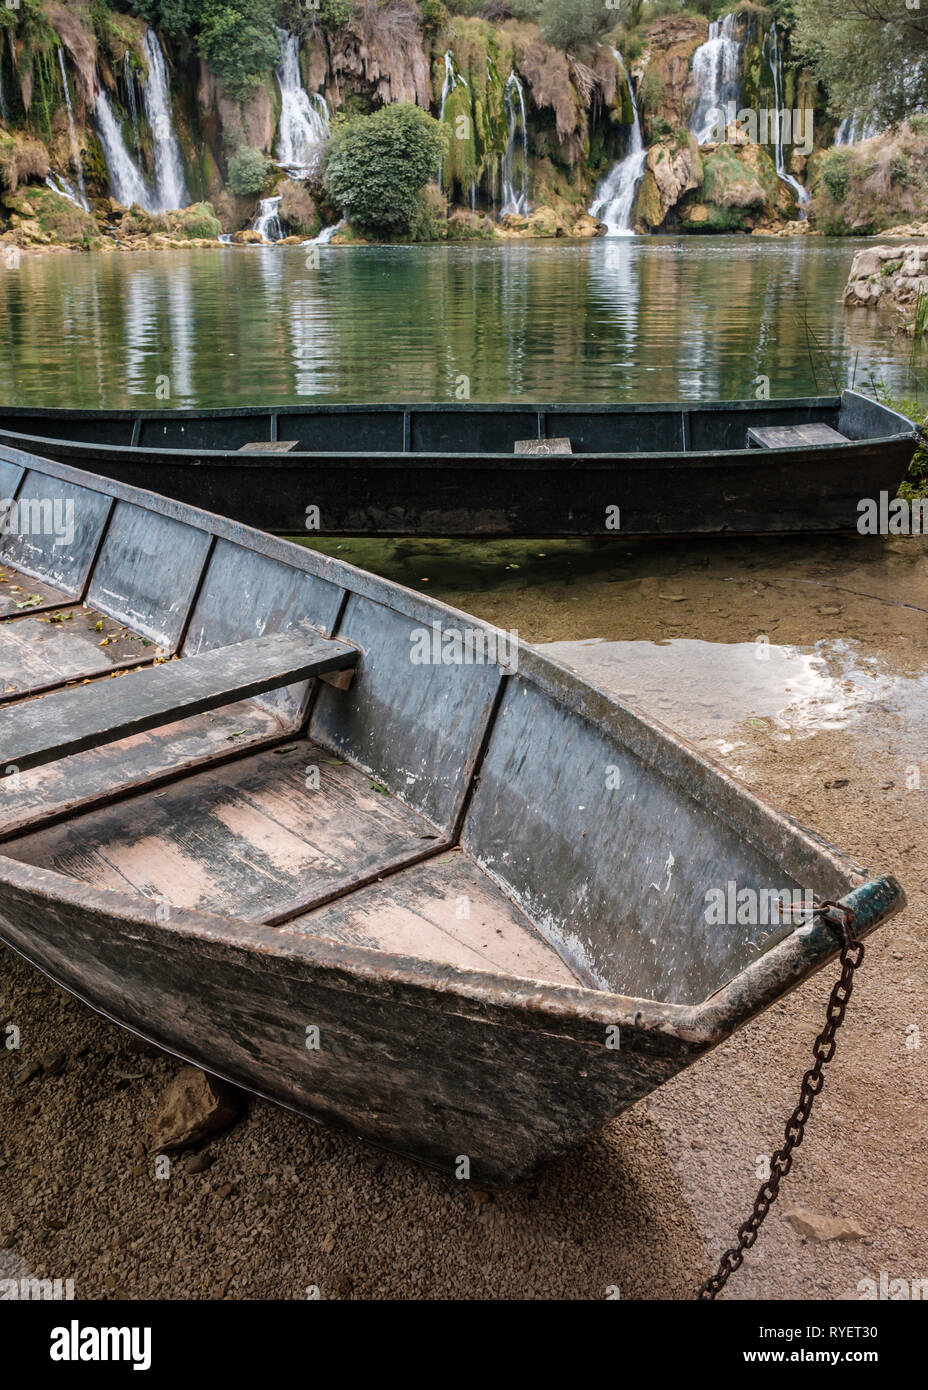 Two wooden boats moored on the shoreline of the Trebizat River with Kravice Falls in the background, Herzegovina, Bosnia and Herzegovina - Stock Image